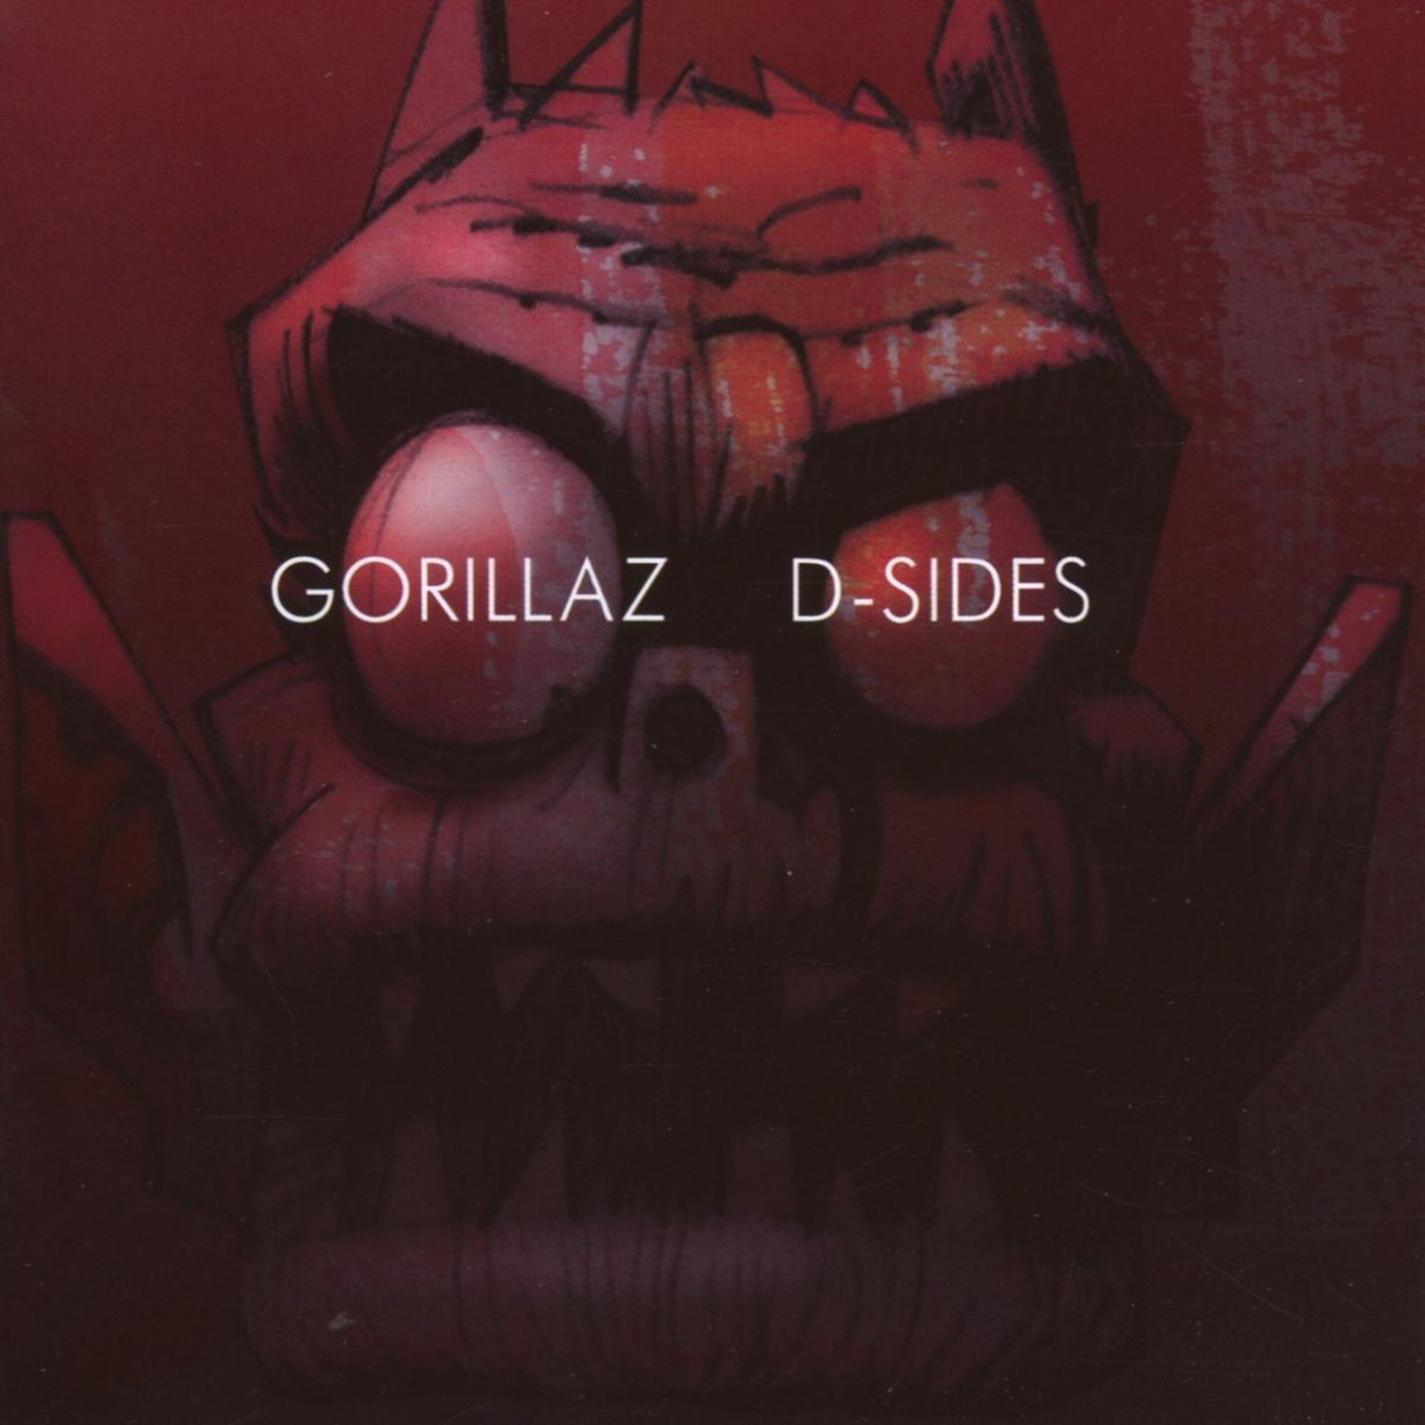 Gorillaz - D-Sides (RSD 2020 Drop One) 3LP 180g Vinyl Record Album